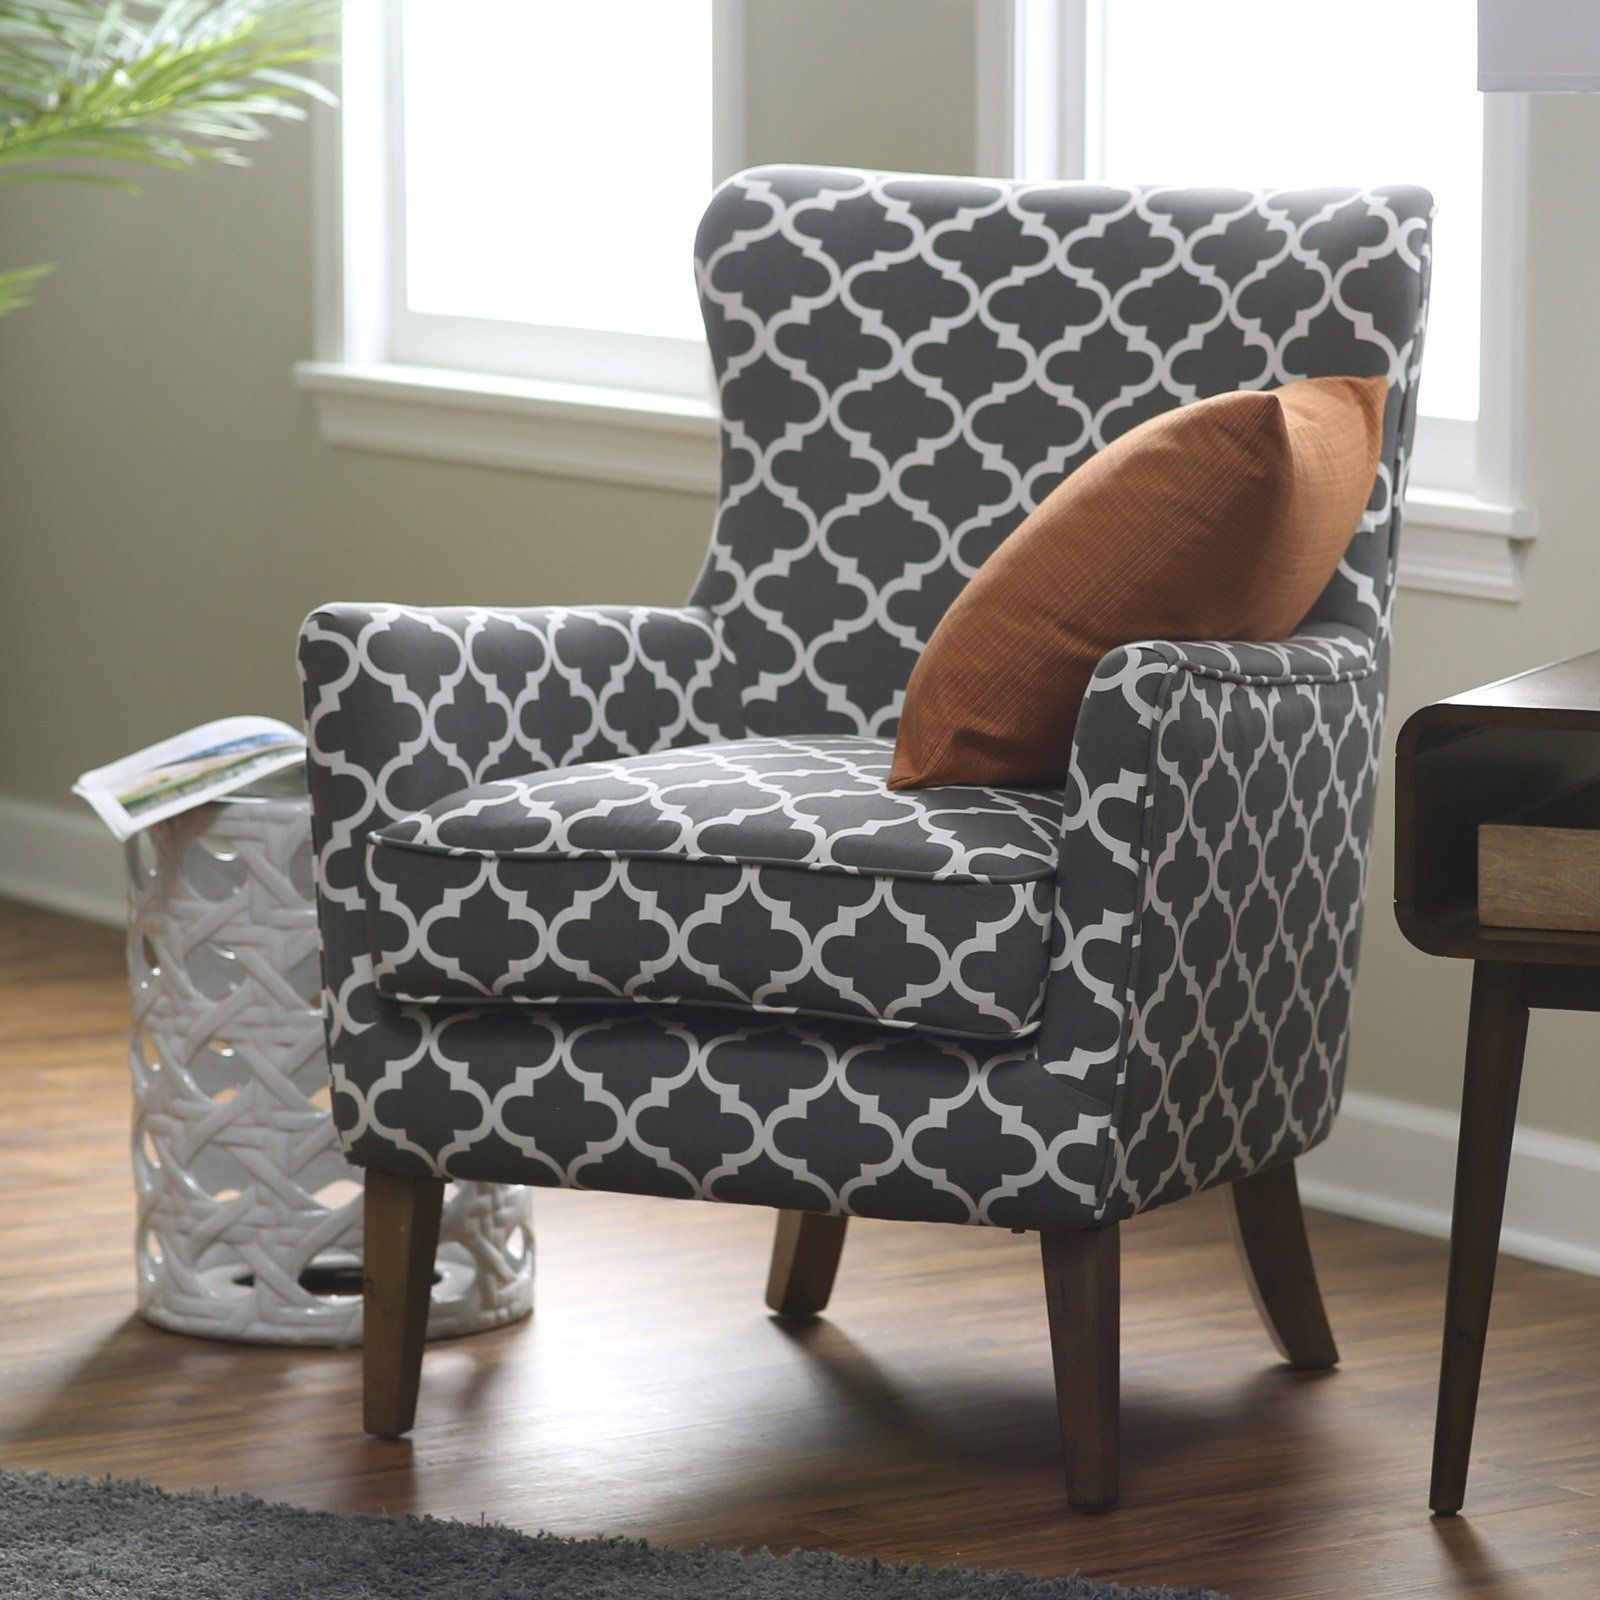 Printed Chairs Home Interior Design Ideas In 2020 Accent